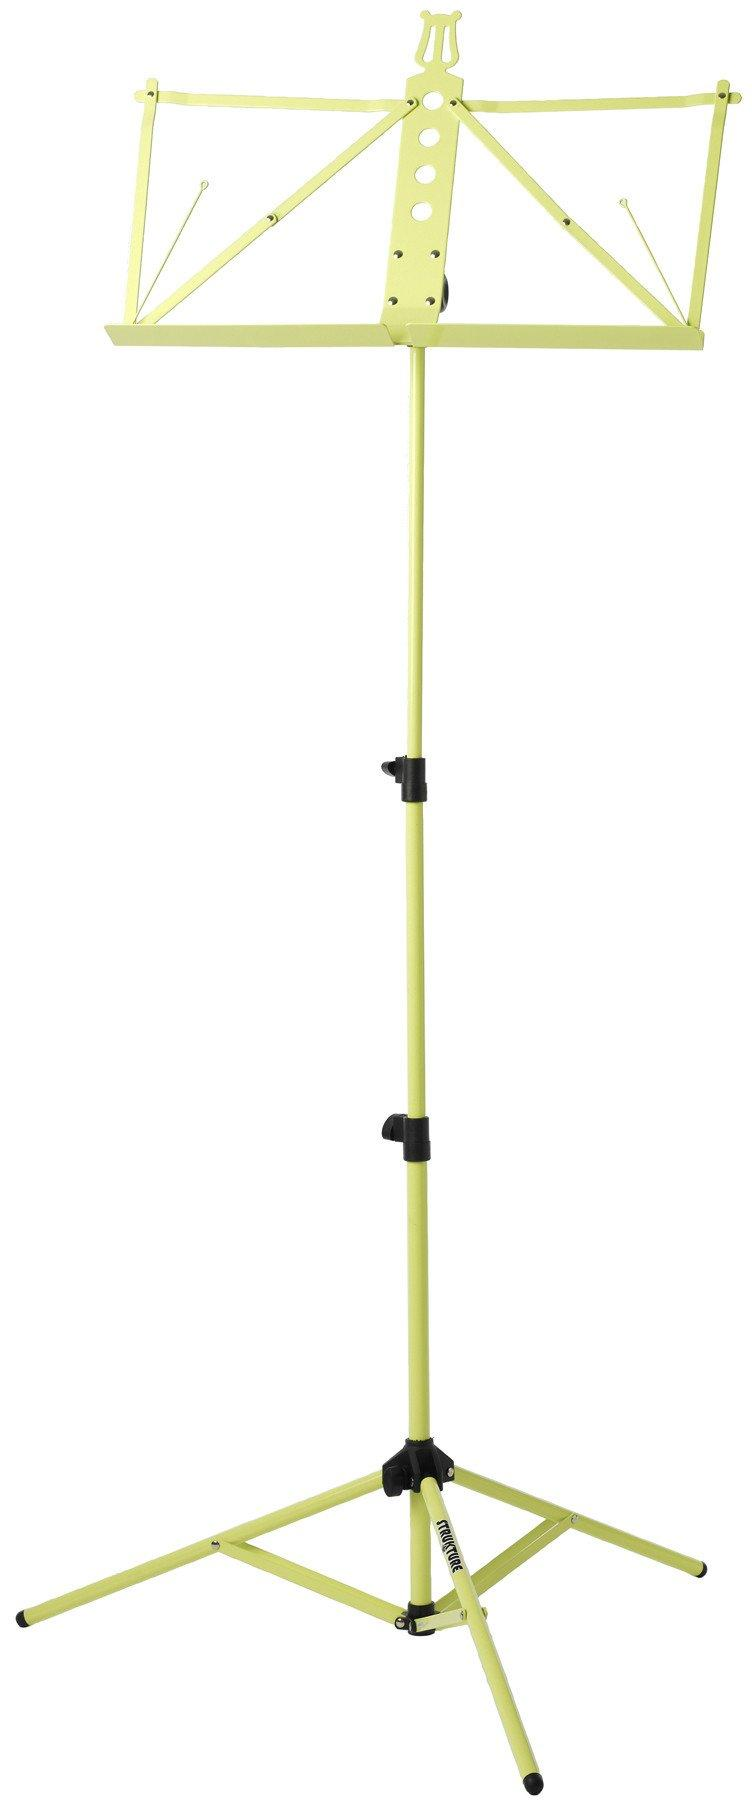 Deluxe Aluminum Music Stand w/Adjustable Tray - Lime Green